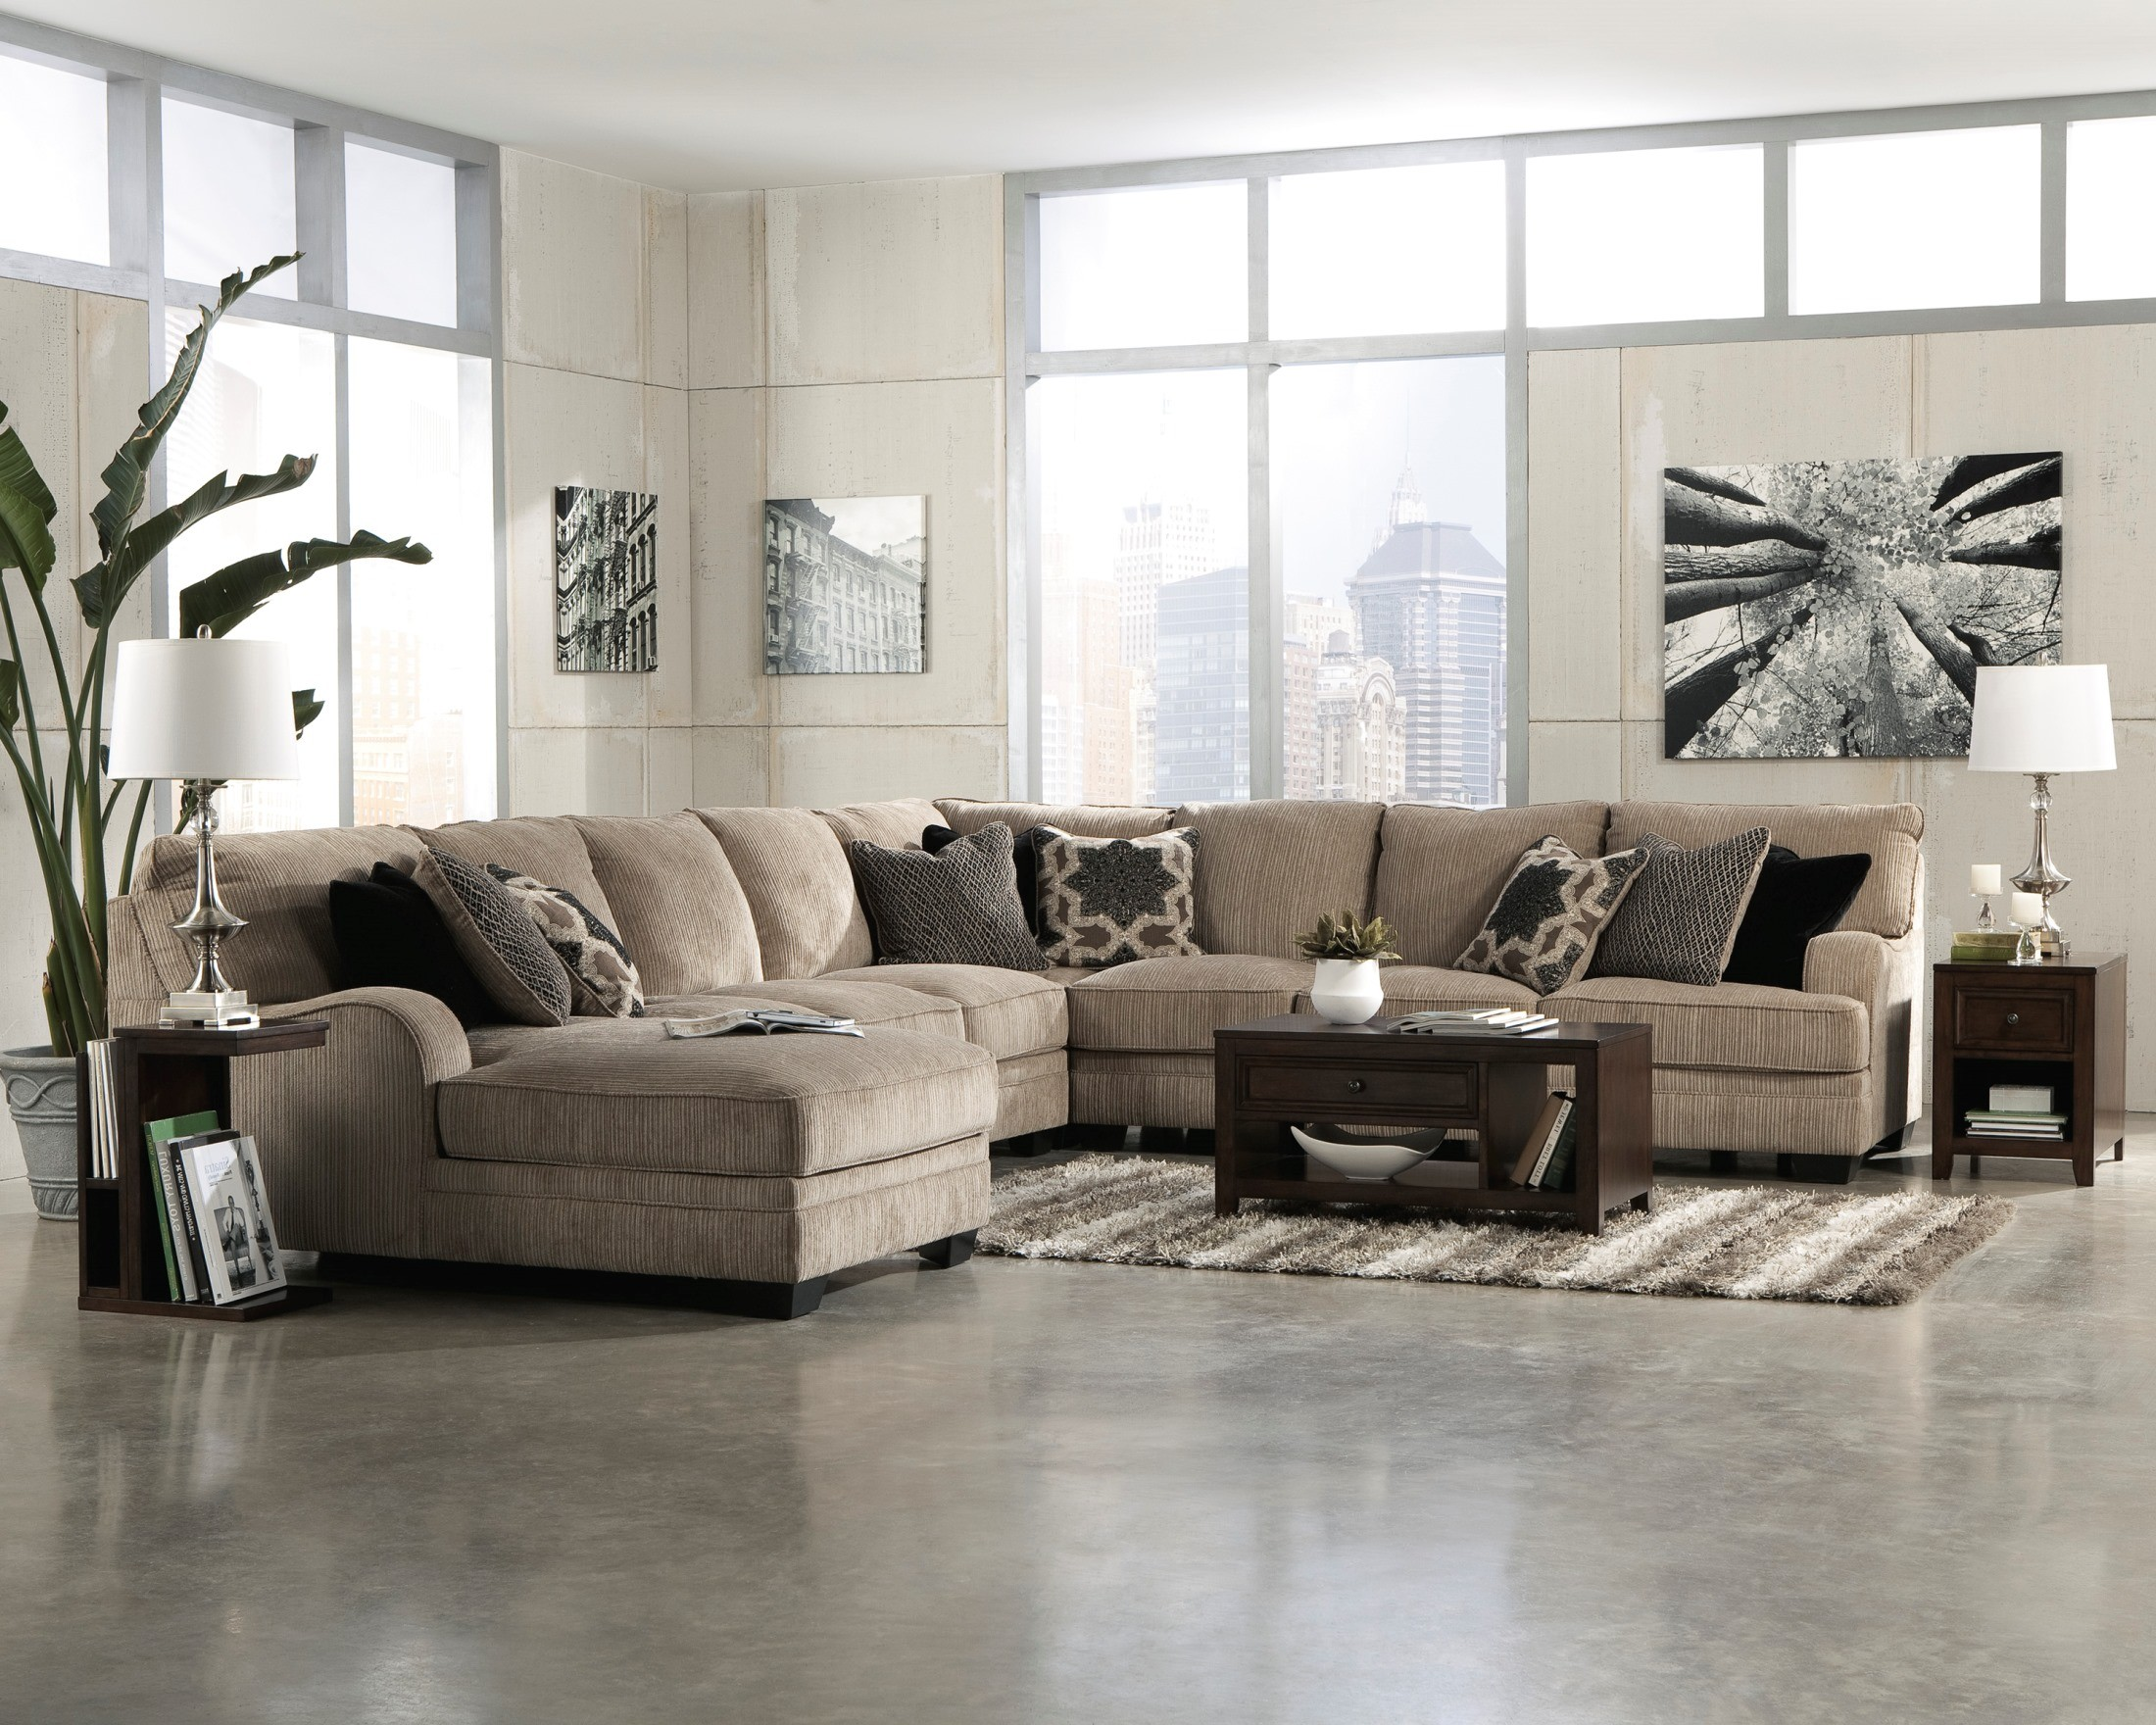 Katisha Platinum Laf Chaise Sectional 30500 Ashley Furniture